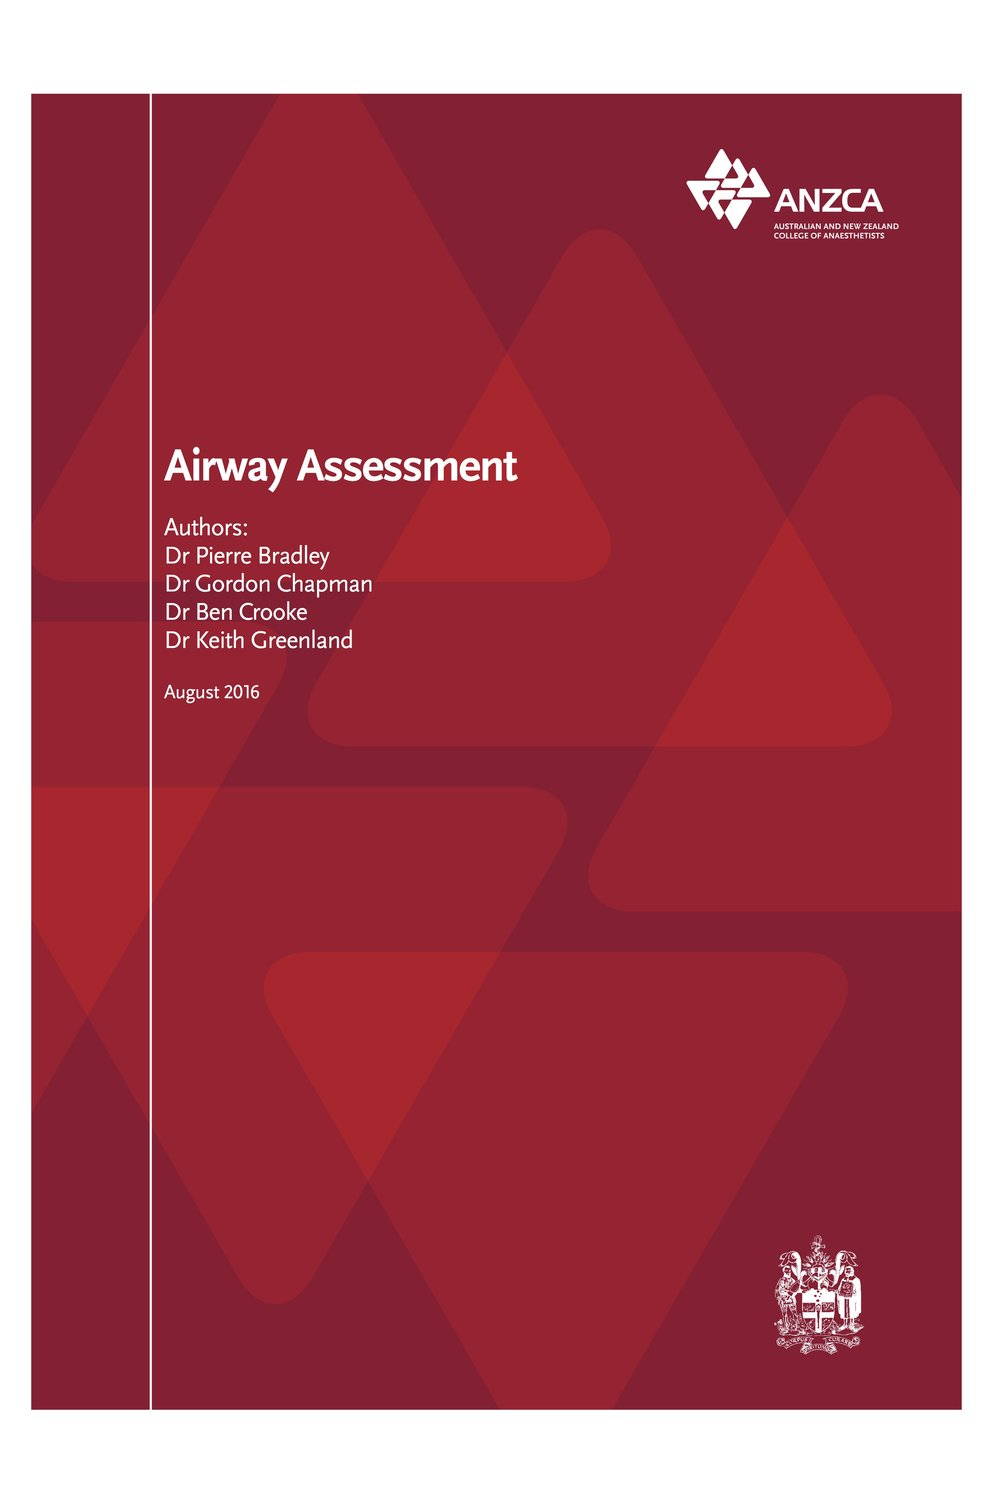 Australian & New Zealand College of Anaesthetists Airway Assessment Document